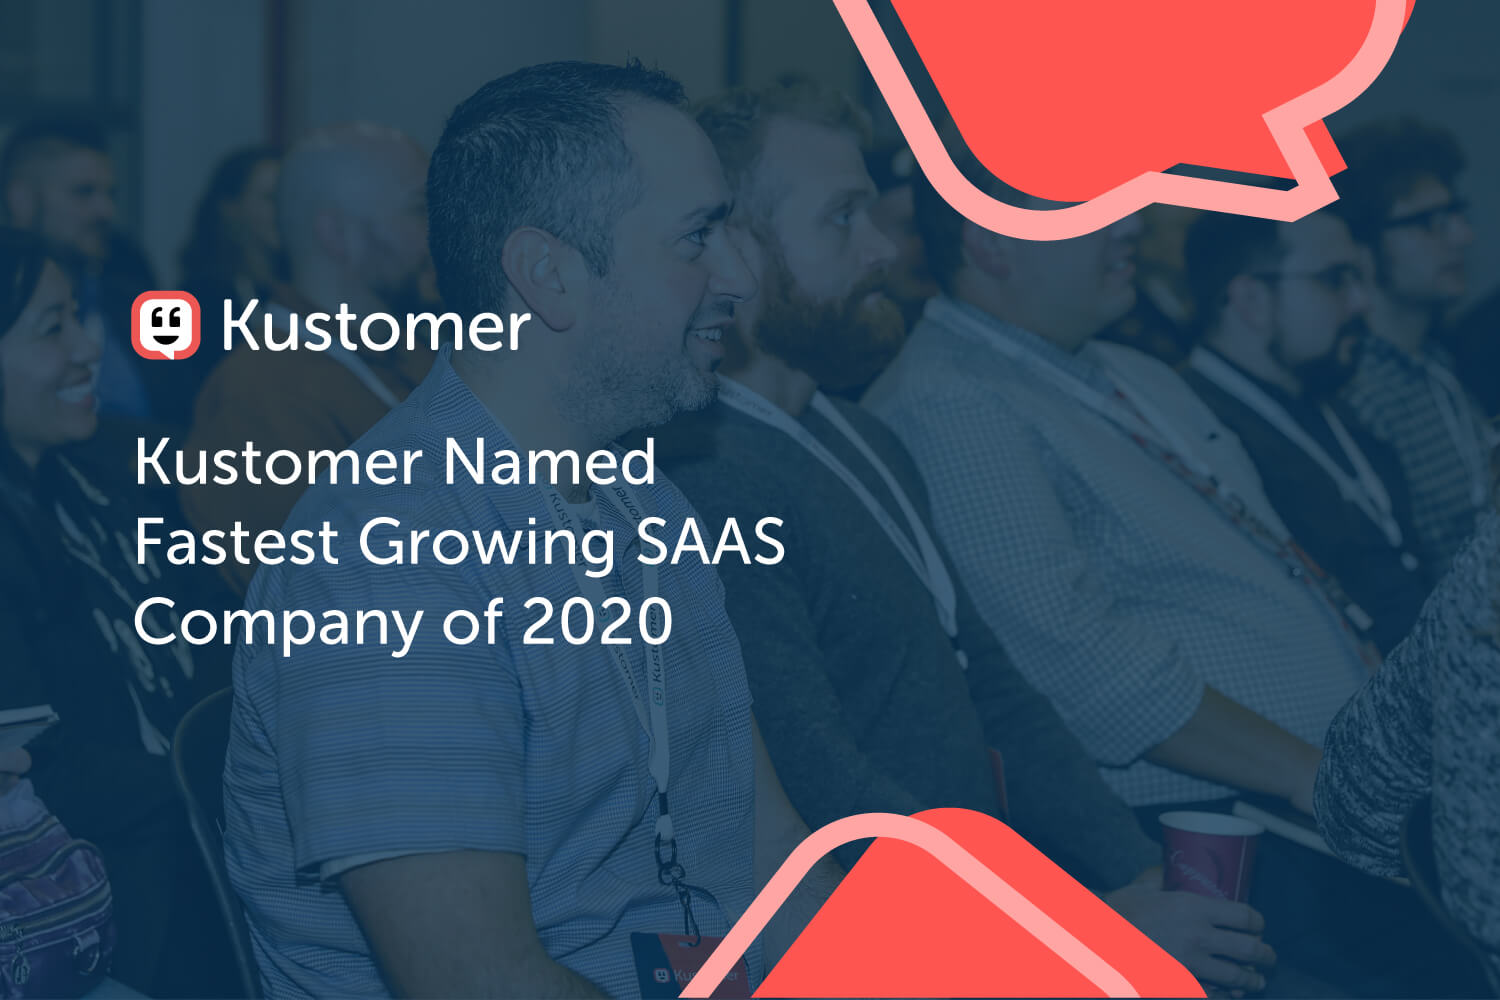 Kustomer Named Fastest Growing SaaS Company of 2020